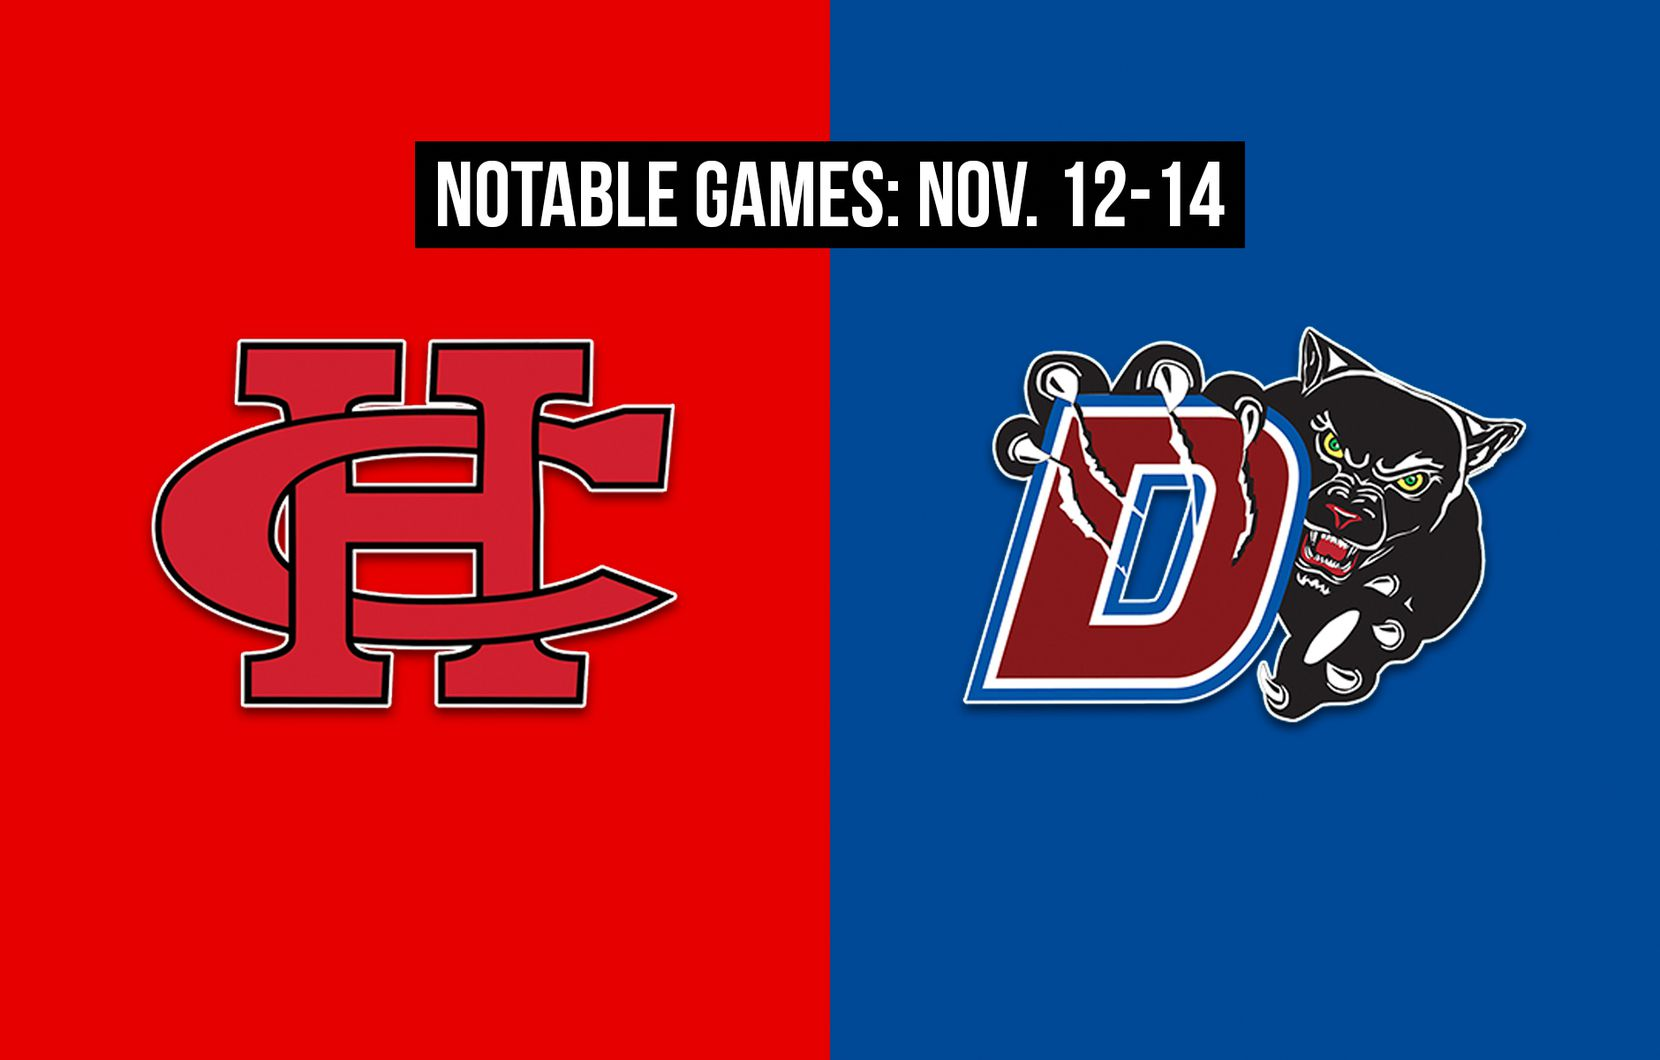 Notable games for the week of Nov. 12-14 of the 2020 season: Cedar Hill vs. Duncanville.